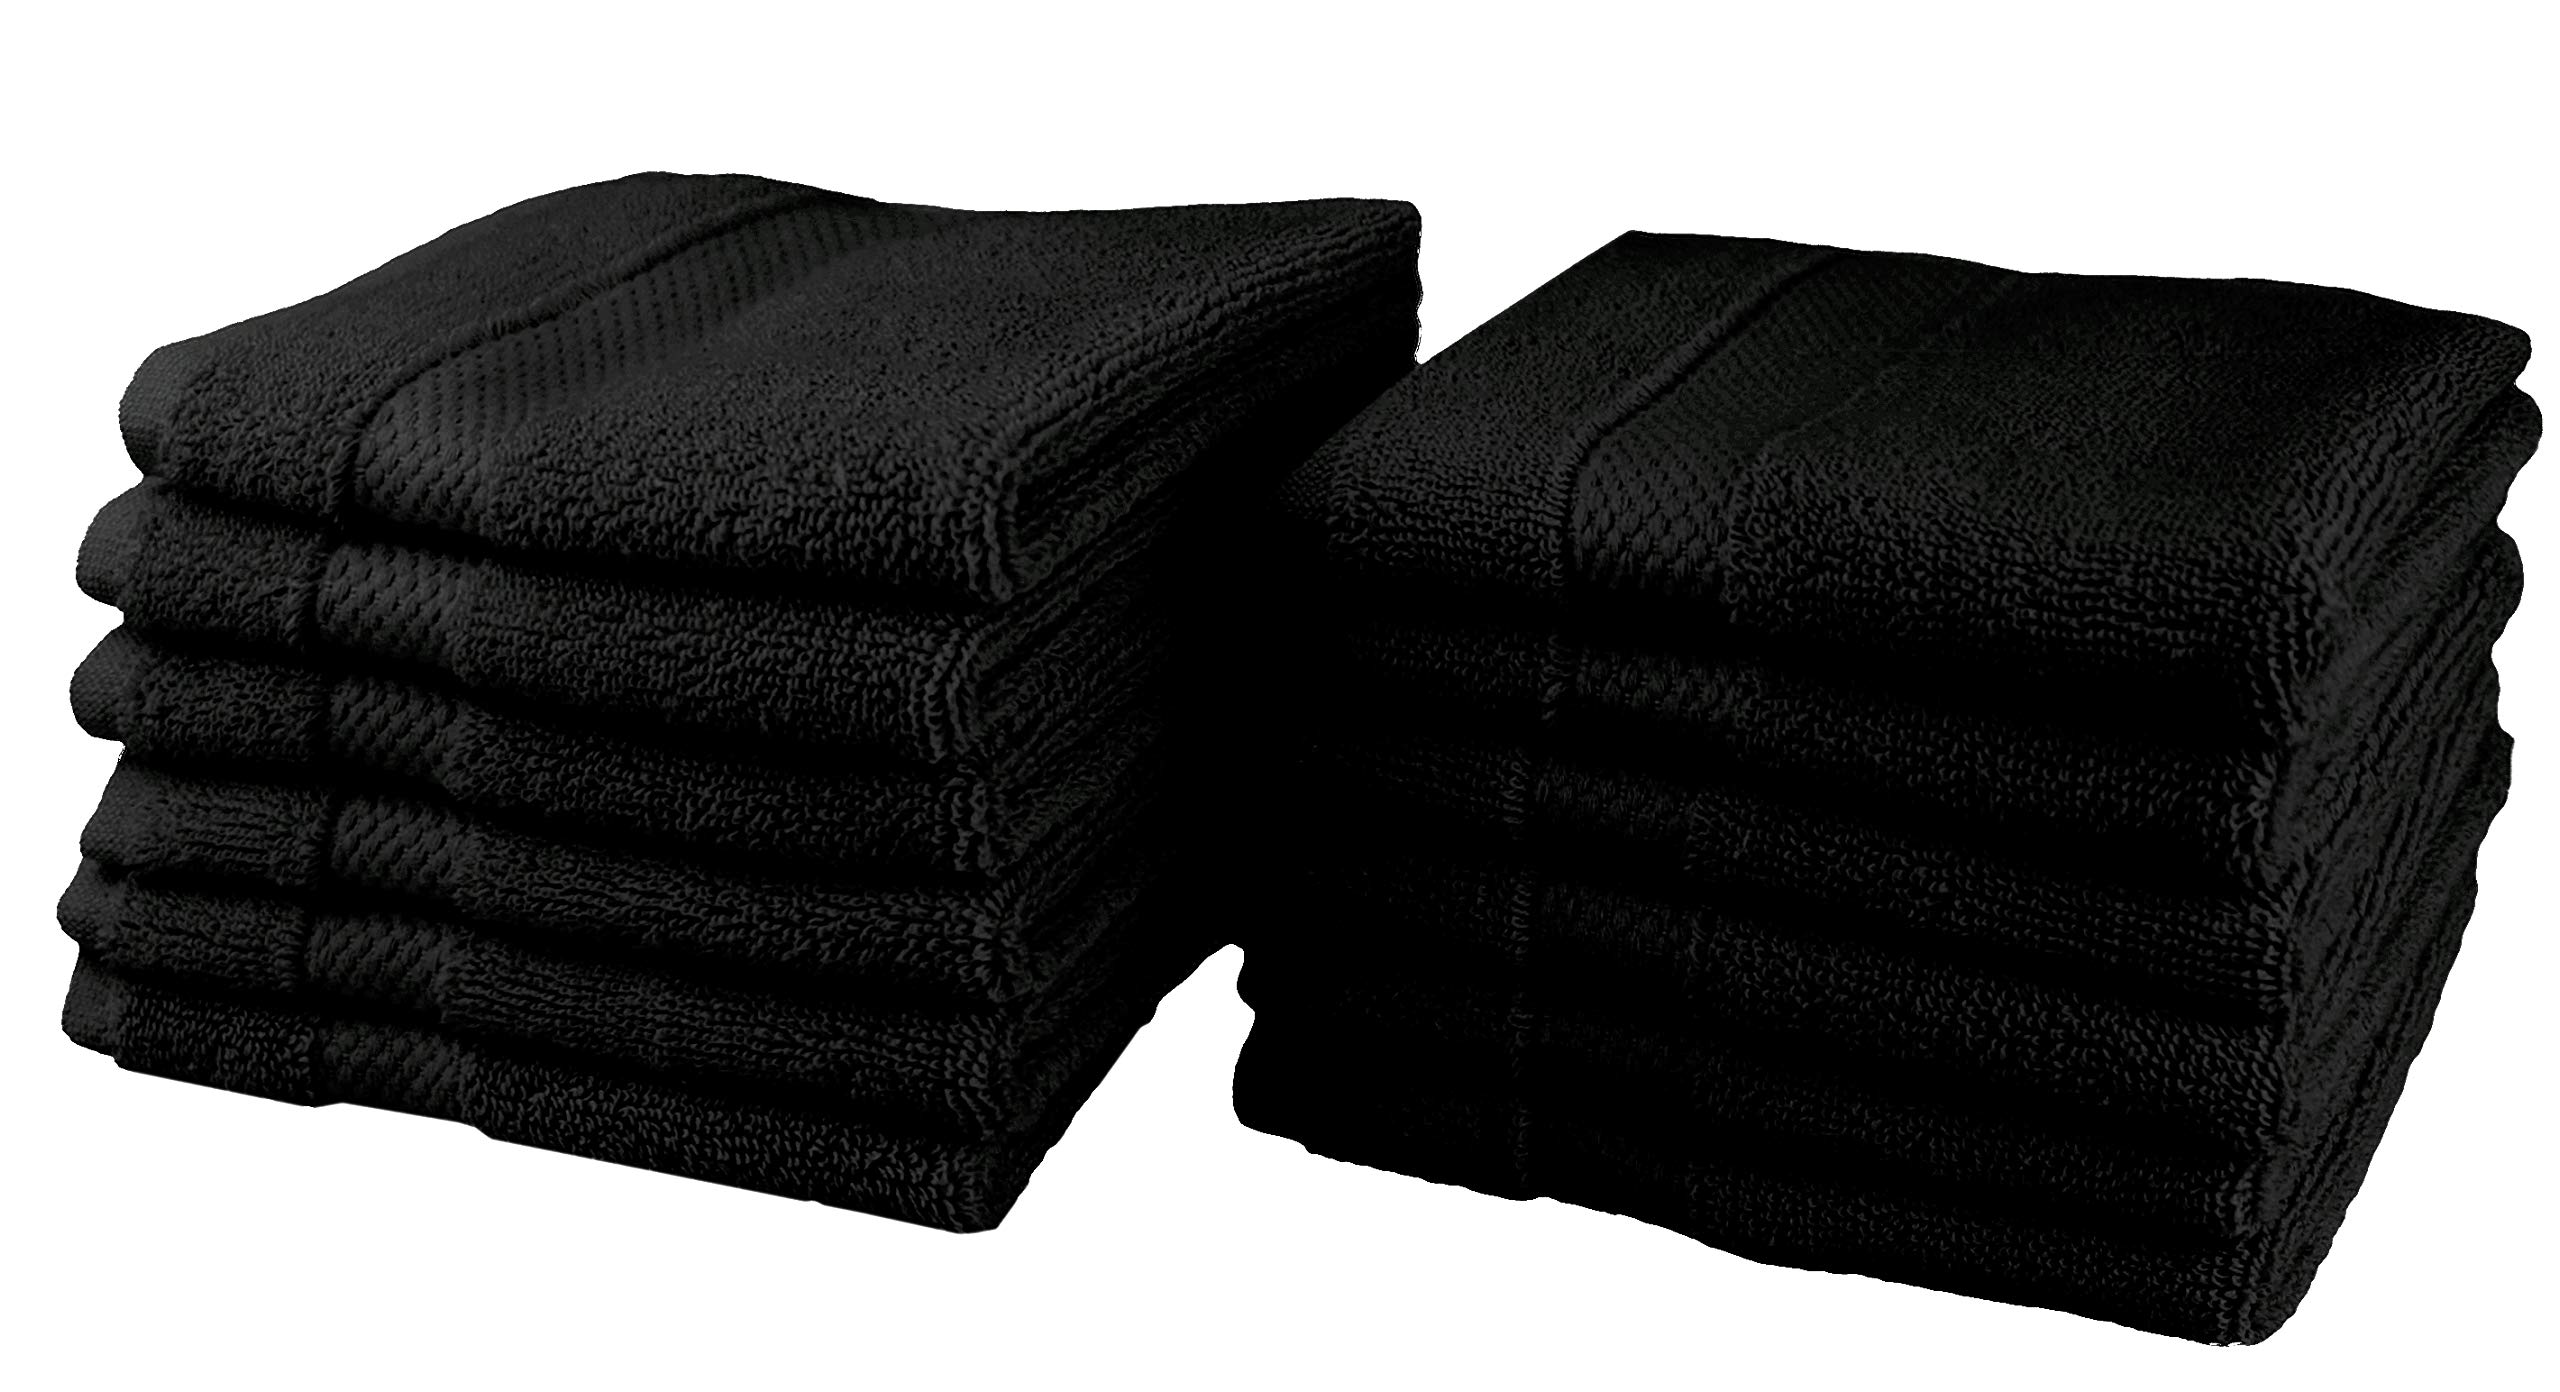 Cotton Craft - 12 Pack Luxuriously Oversized Hotel Wash Cloth - Black - 100% Ringspun Cotton - 13x13 - Heavy Weight 700 Grams - 2 Ply Construction - Highly Absorbent - Easy Care Machine Wash